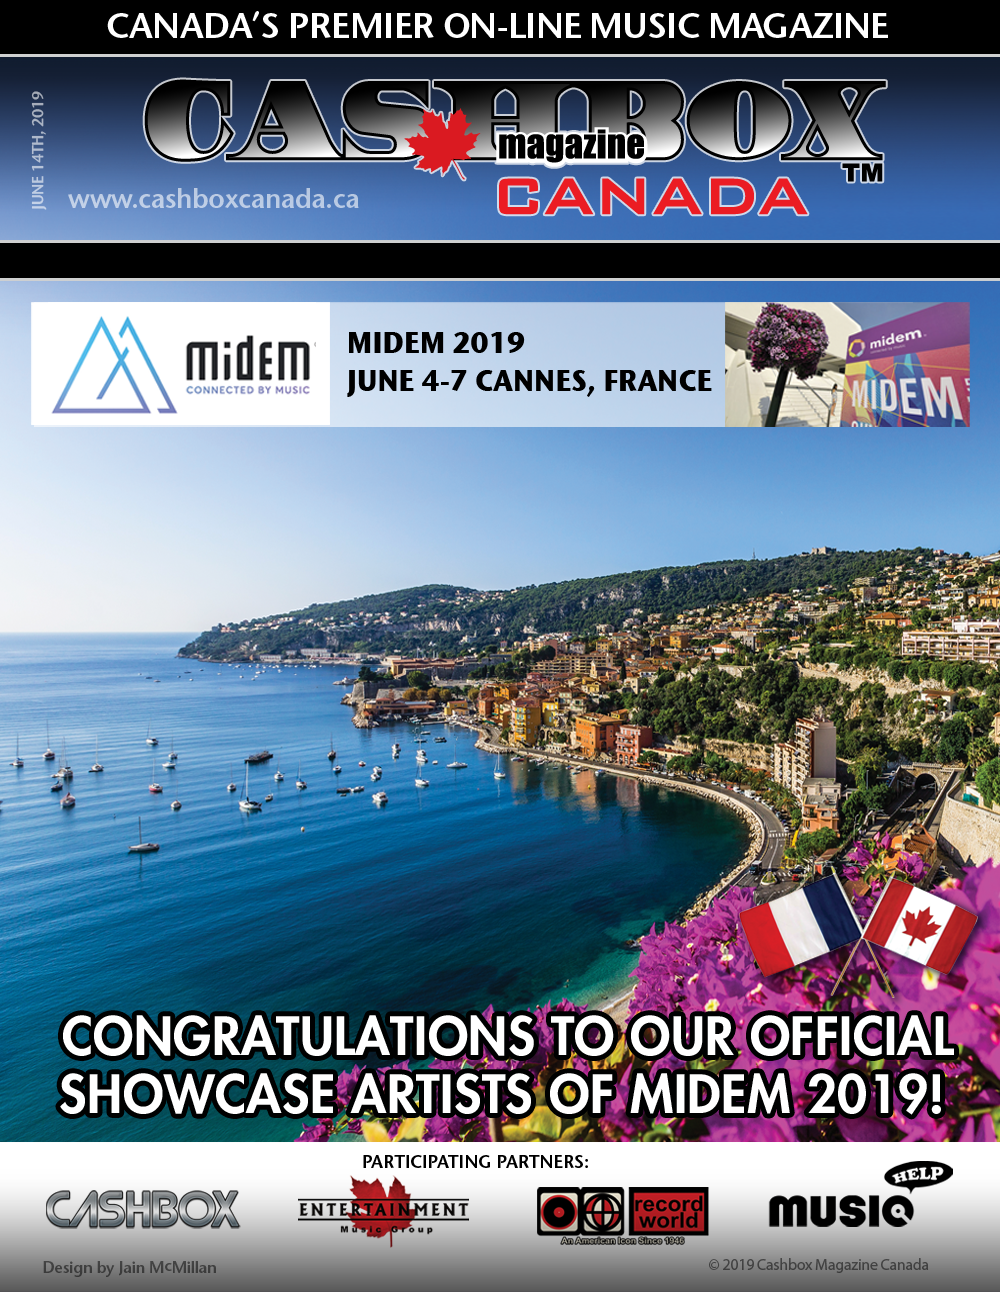 Thank you Morrison's and Midem 2019!   Cashbox Canada